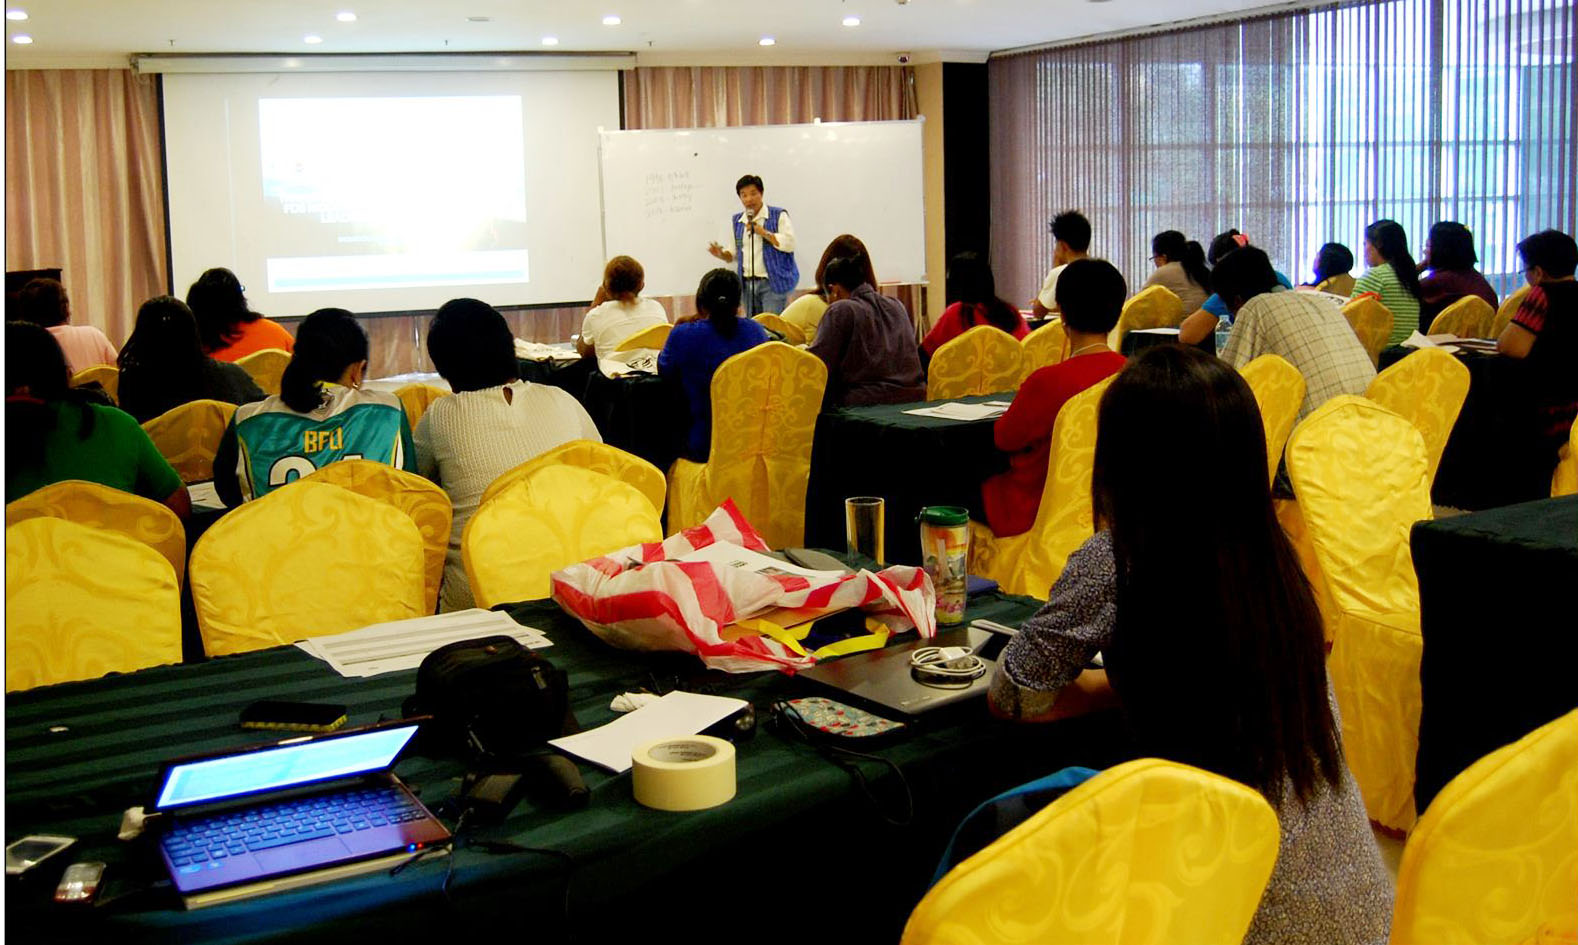 Mr. Joel Cervantes, member of the Regional Autonomy Speaker's Bureau shares the history of regional autonomy in the Cordilleras during the Training Orientation on FDS Module of Parent Leaders for Cordillera Autonomy on May 3-6, 2016 at the Baguio Crown Legacy Hotel.